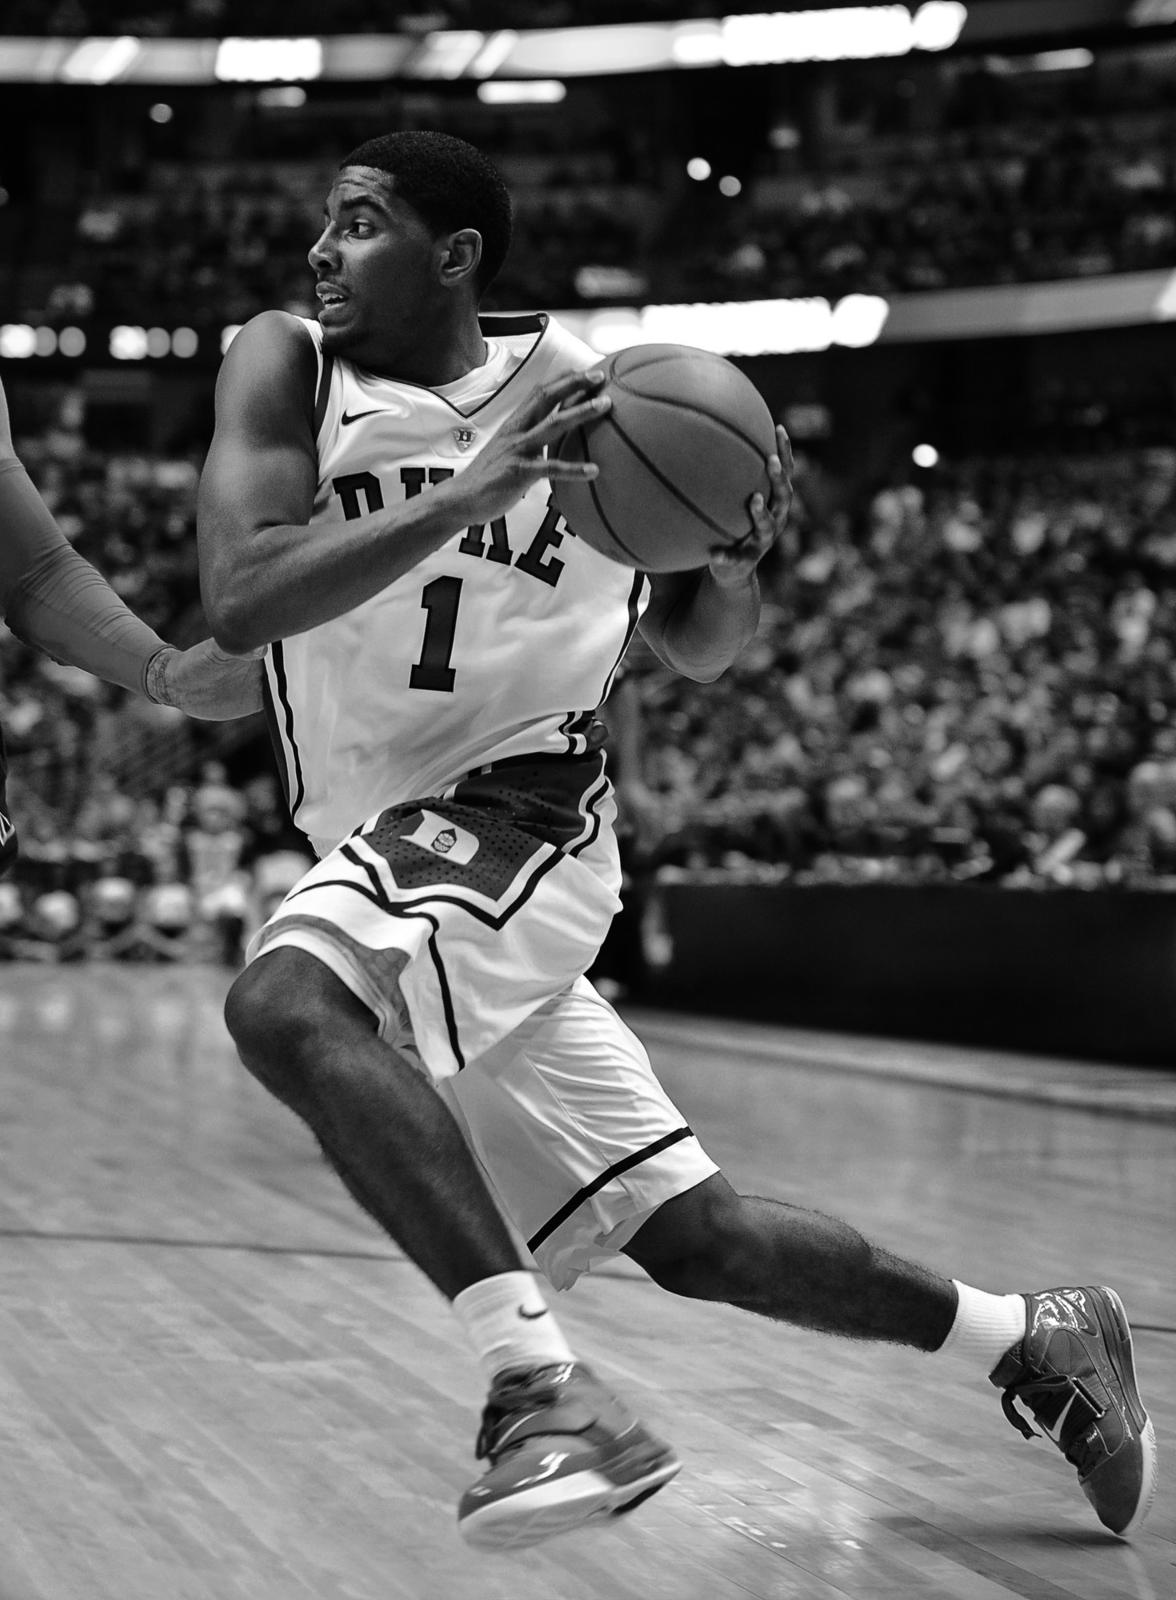 Kyrie Irving as a freshman at Duke University wearing the LEBRON Soldier IV  shoe.